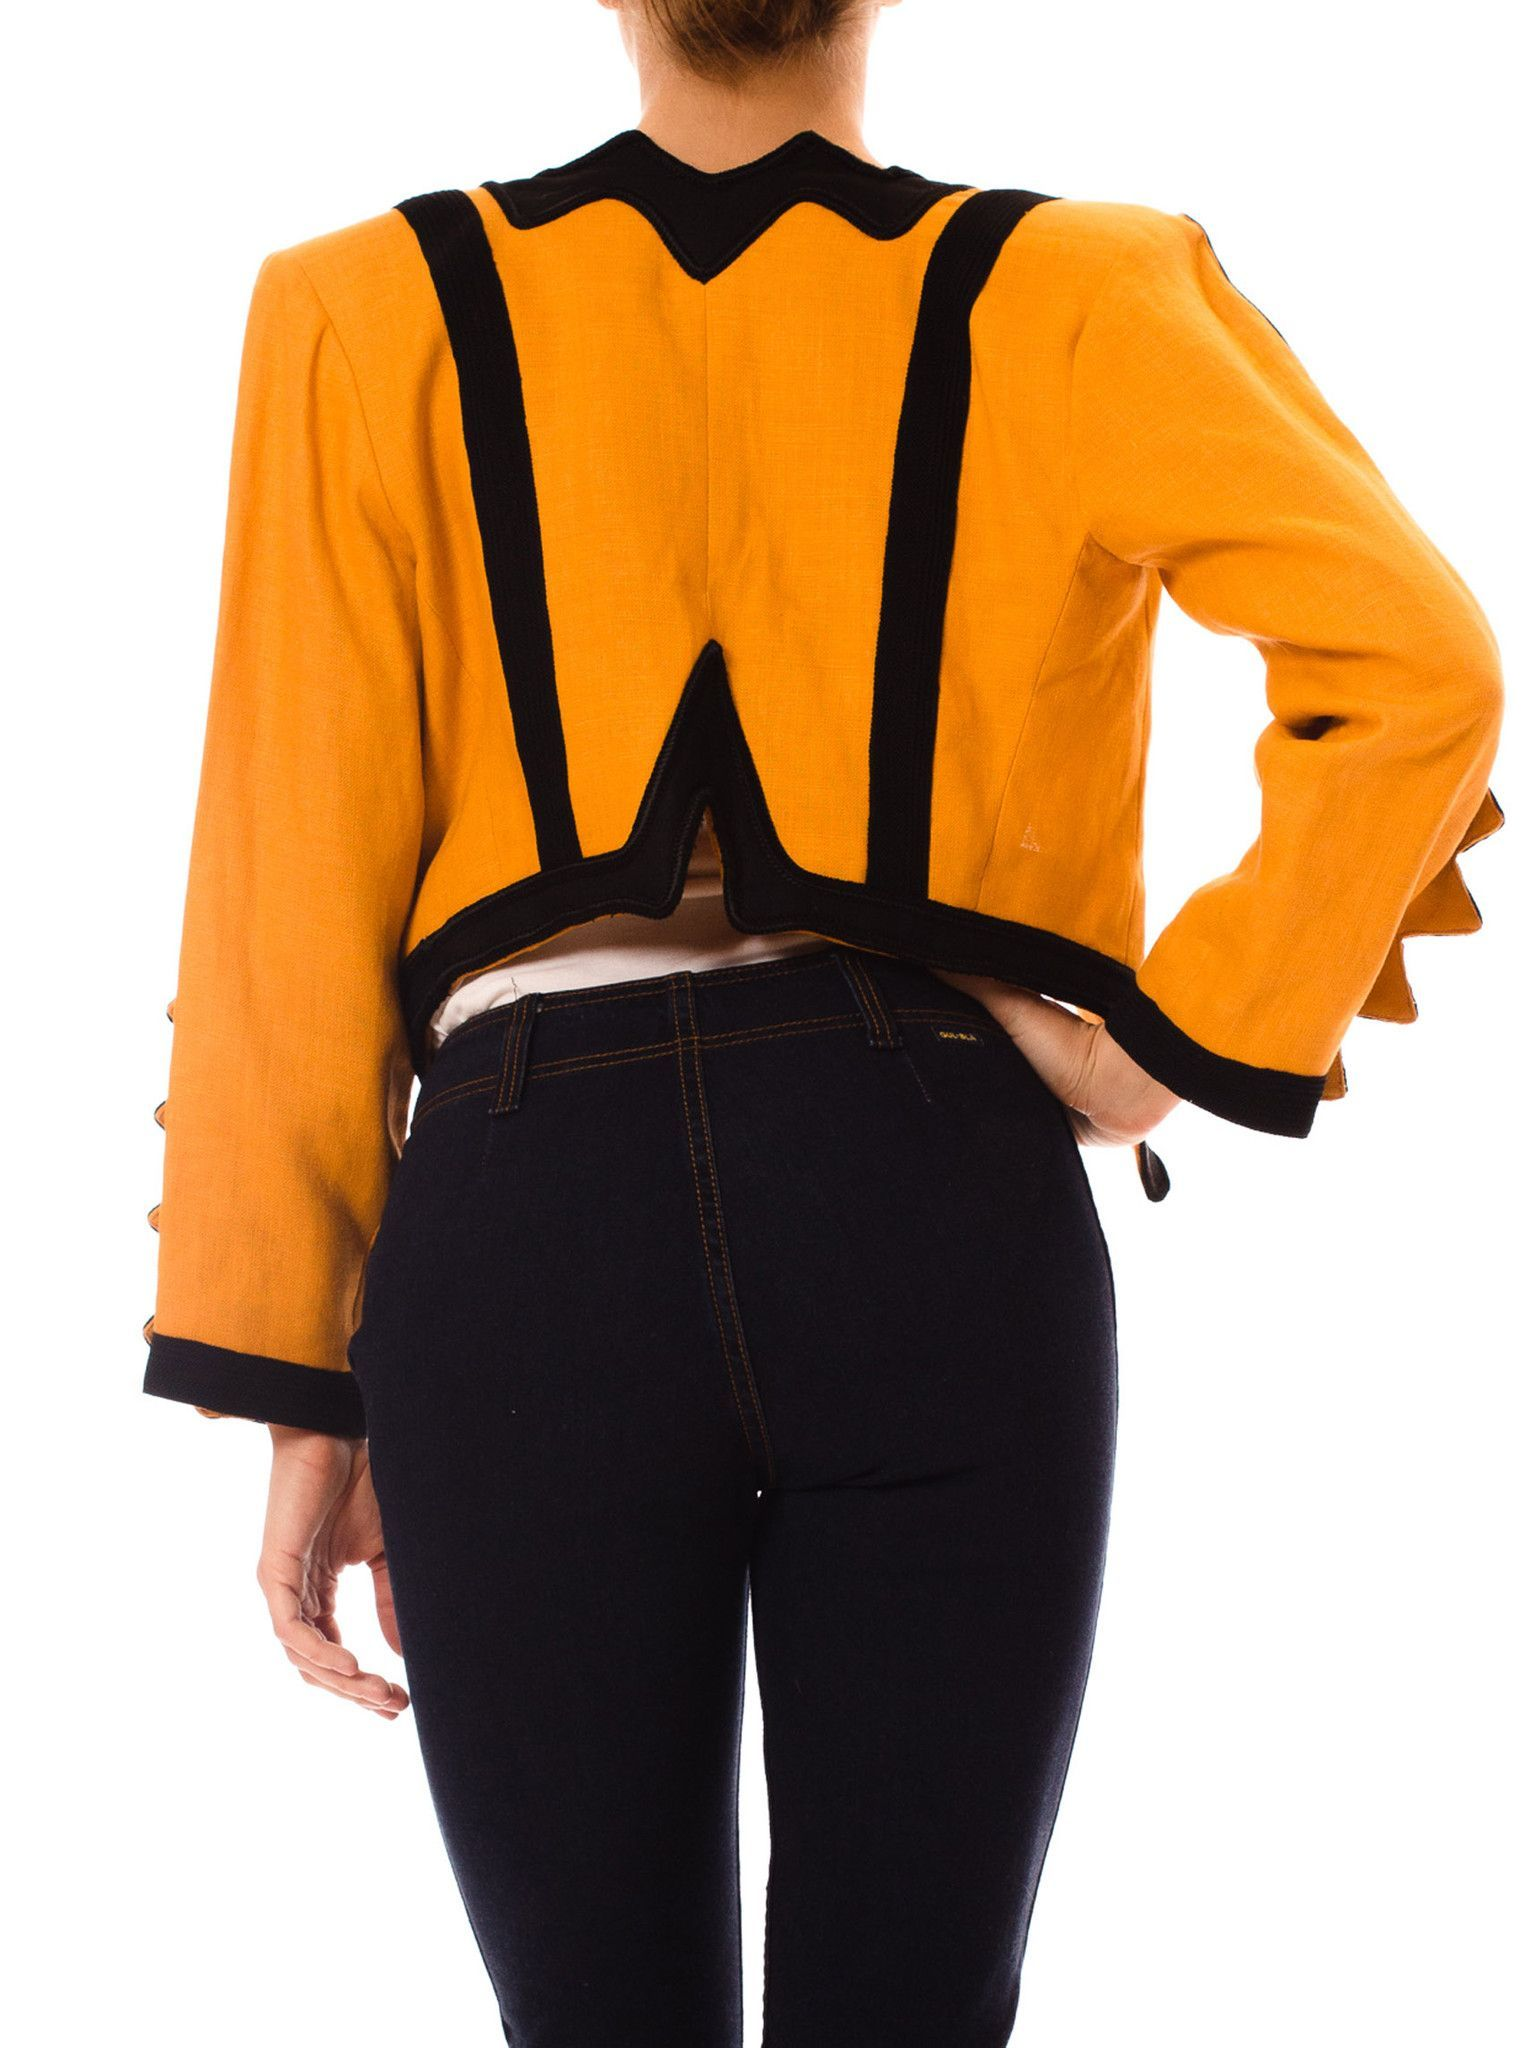 Amazing 1980s Vintage Yves Saint Laurent Yellow and Black Linen Jacket